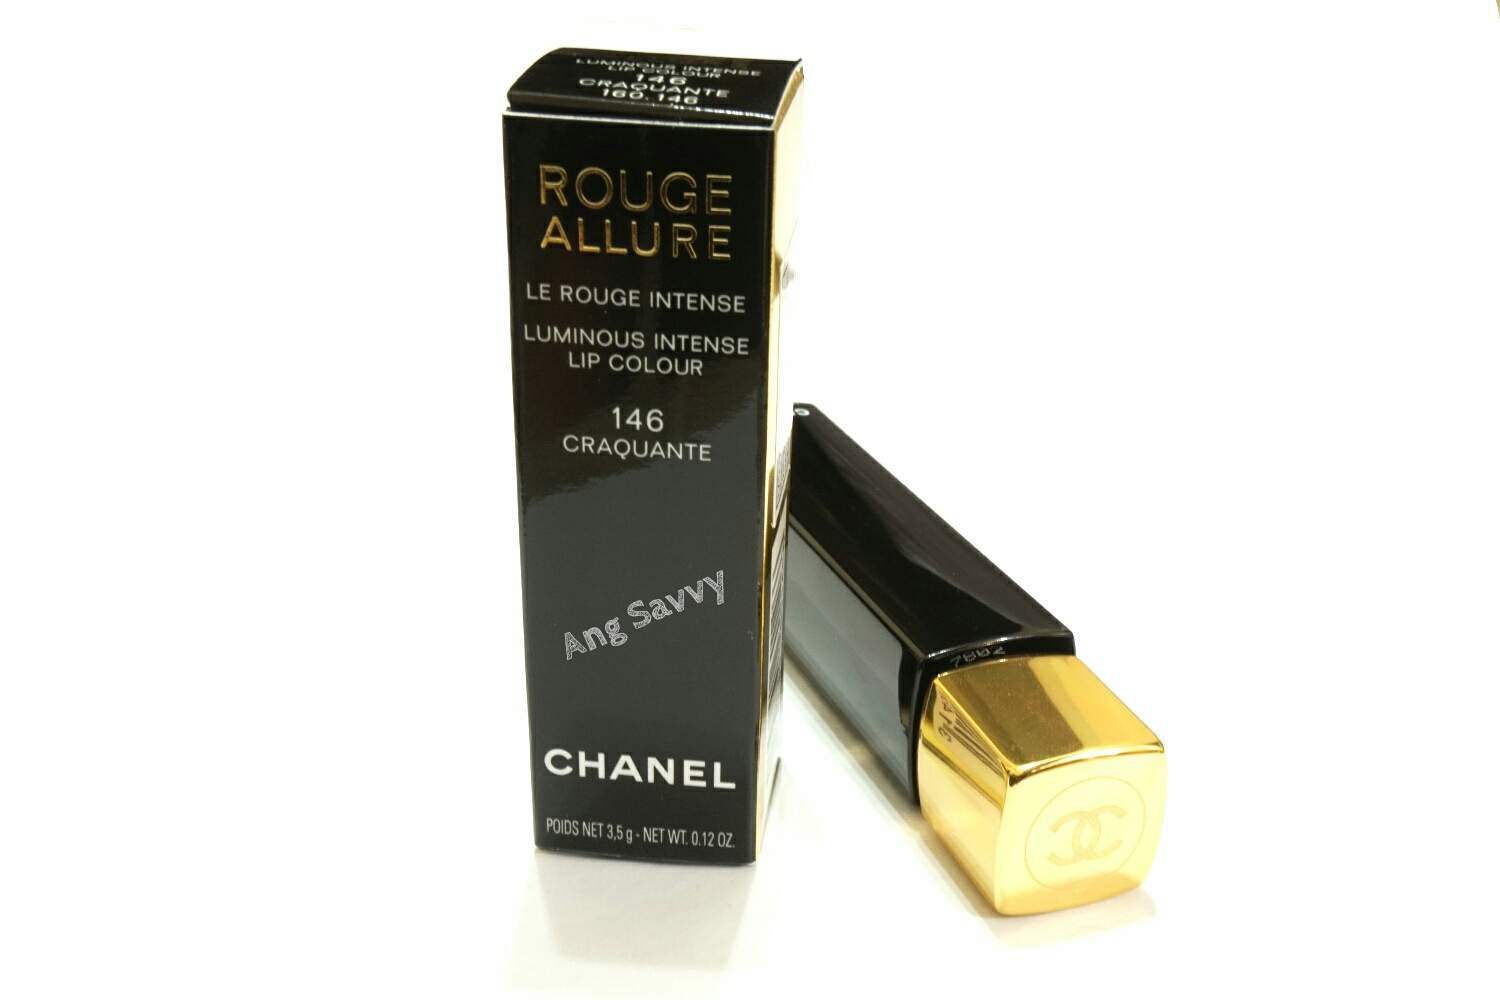 Chanel Rouge Allure 146 Craquante